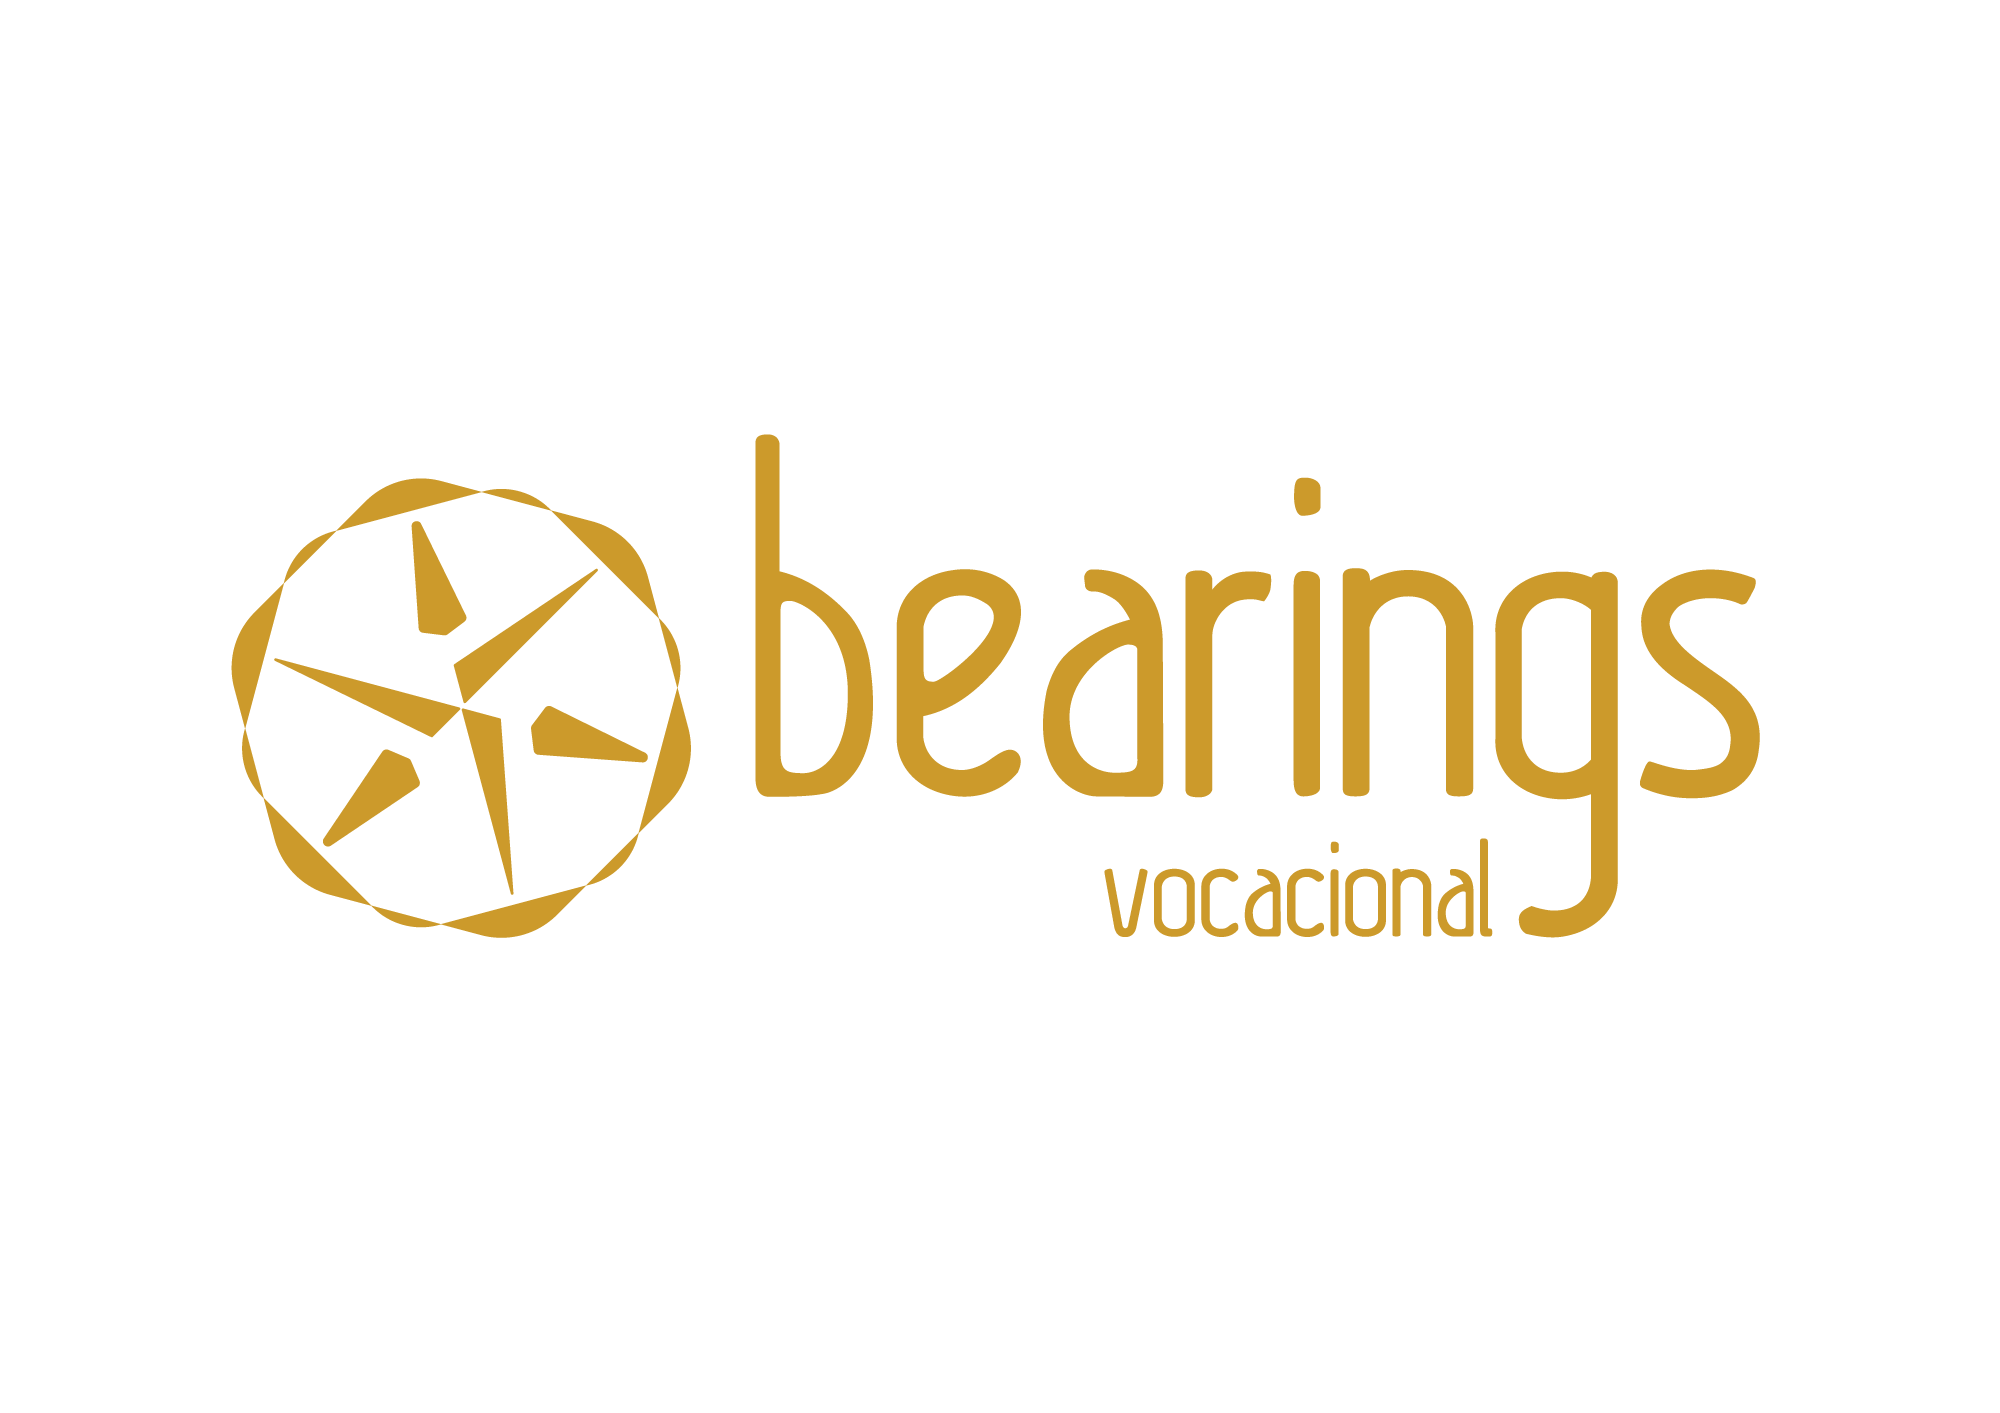 Bearings Vocacional